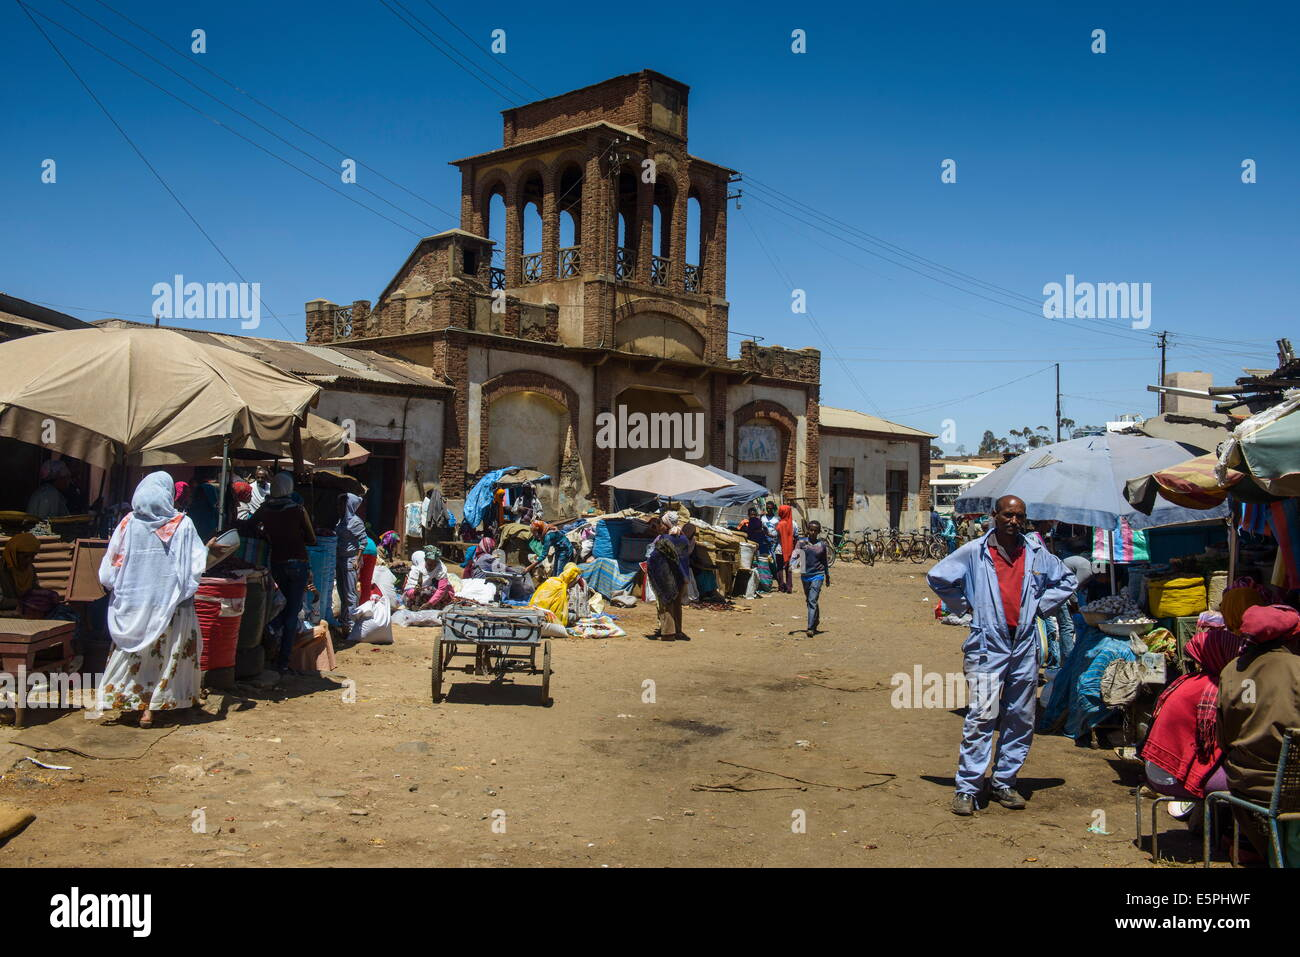 Gate of the Medebar market, Asmara, capital of Eritrea, Africa - Stock Image